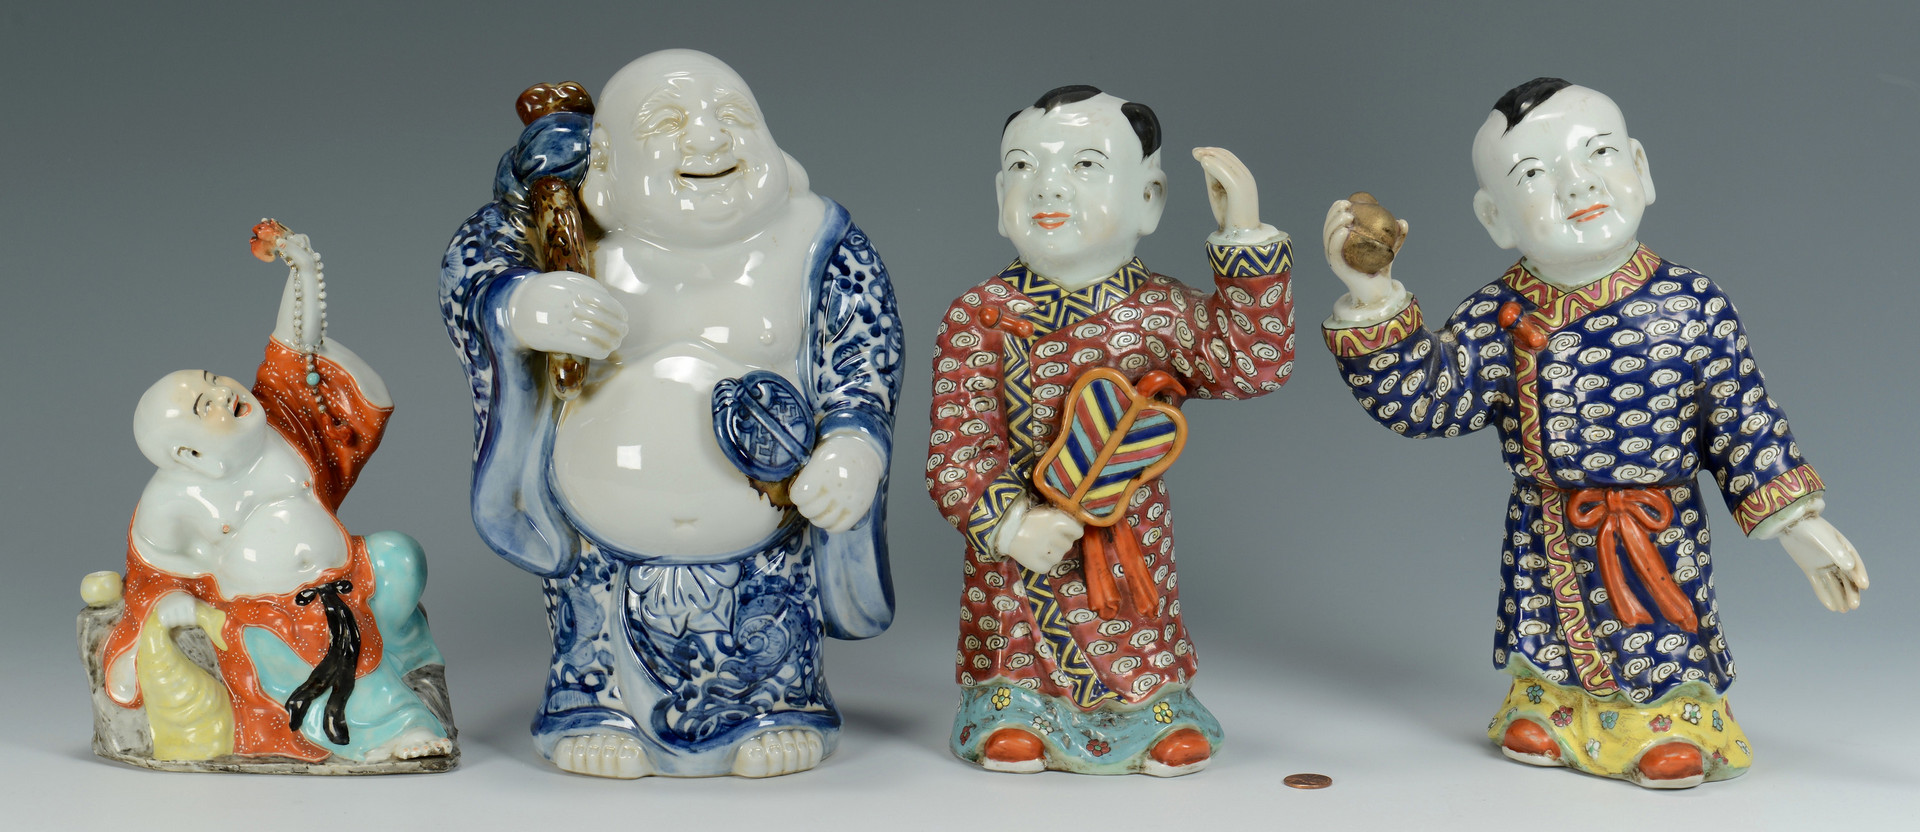 Lot 565: 4 Chinese Porcelain Figures